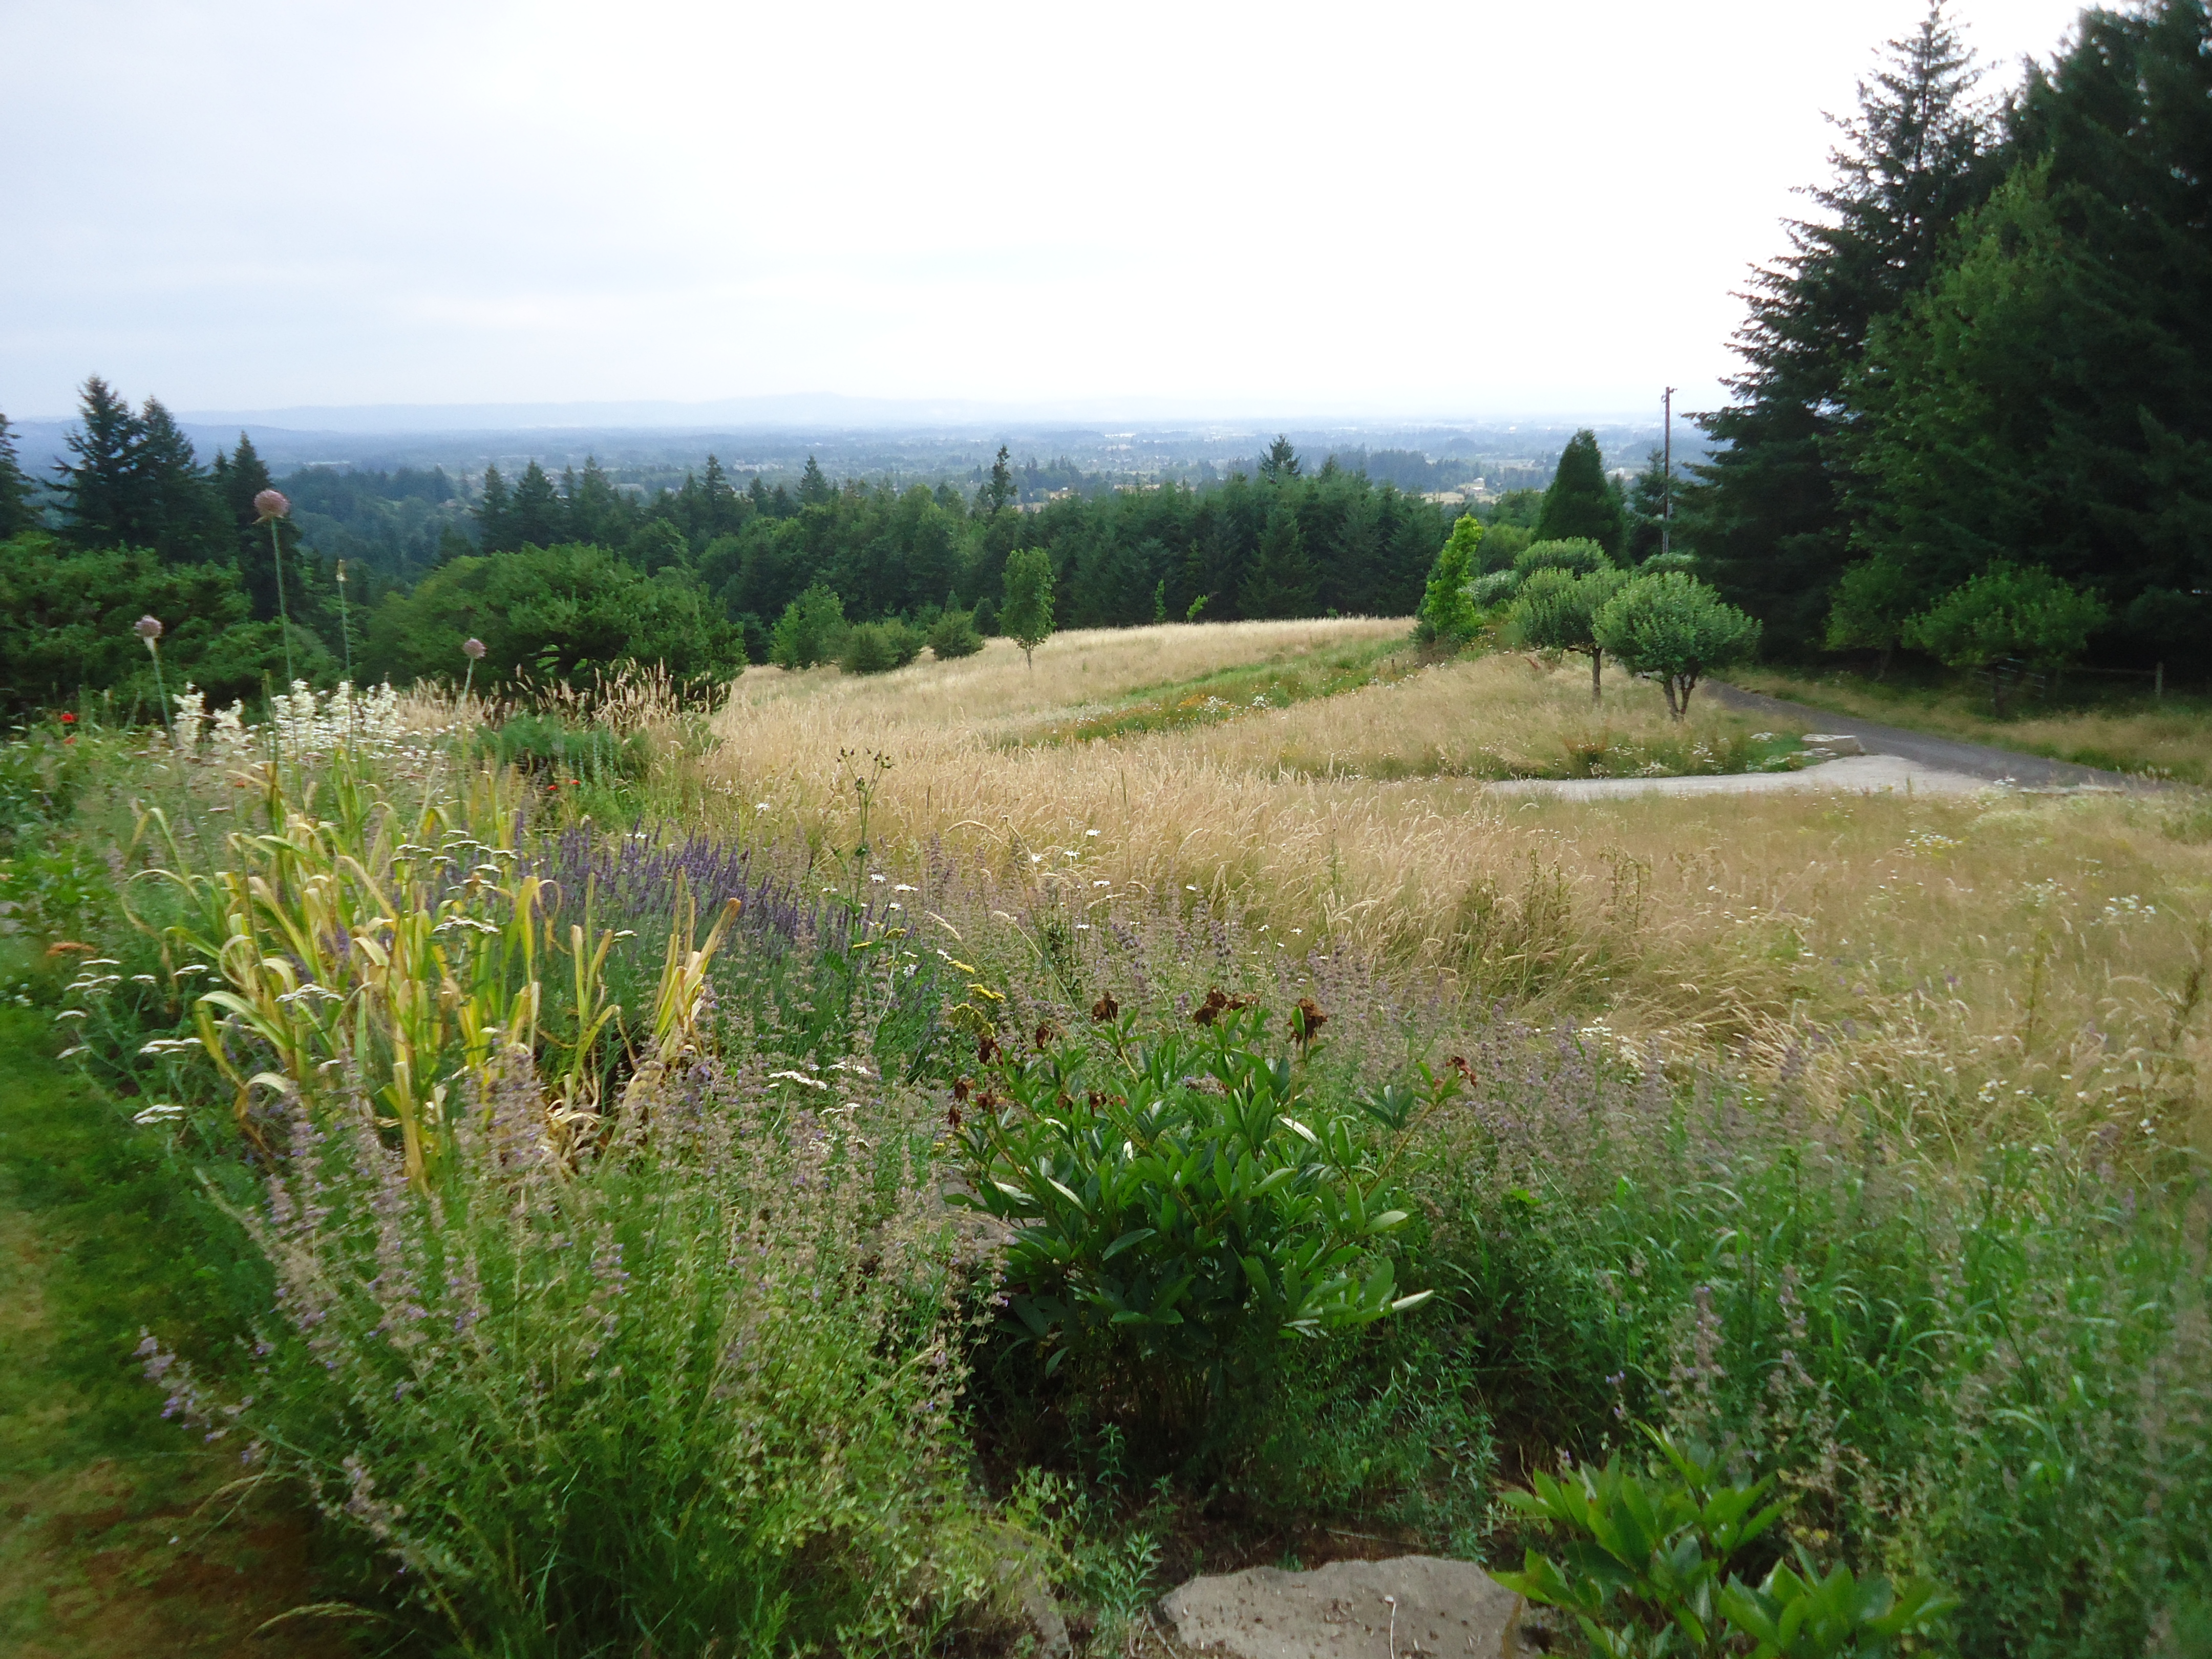 Westwind farm studio a natural garden that bloomin 39 garden for Natural grasses for landscaping